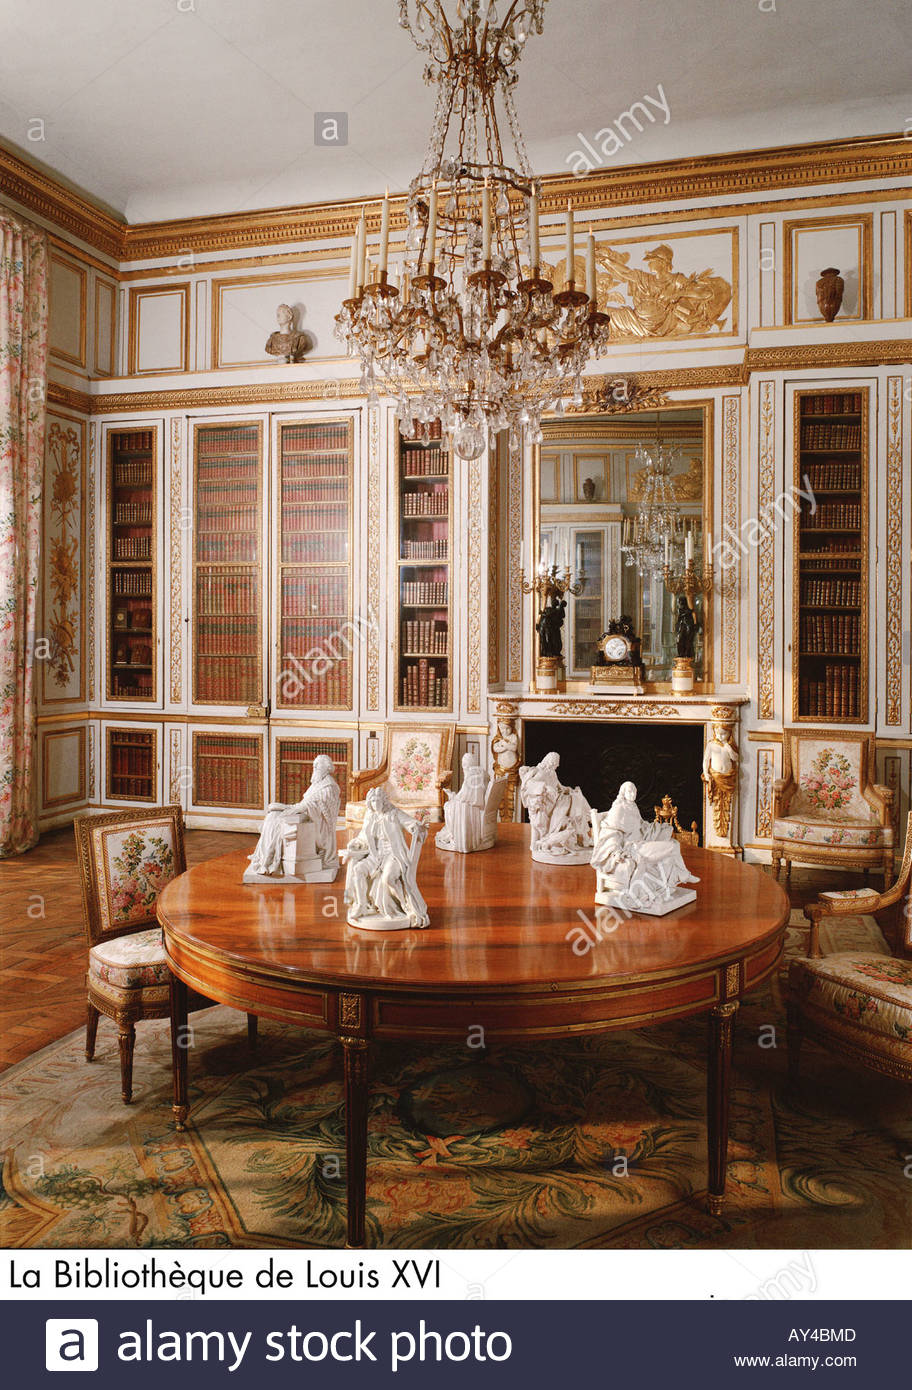 Palace of versailles la biblioth que de louis xvi stock for Chambre louis xvi versailles